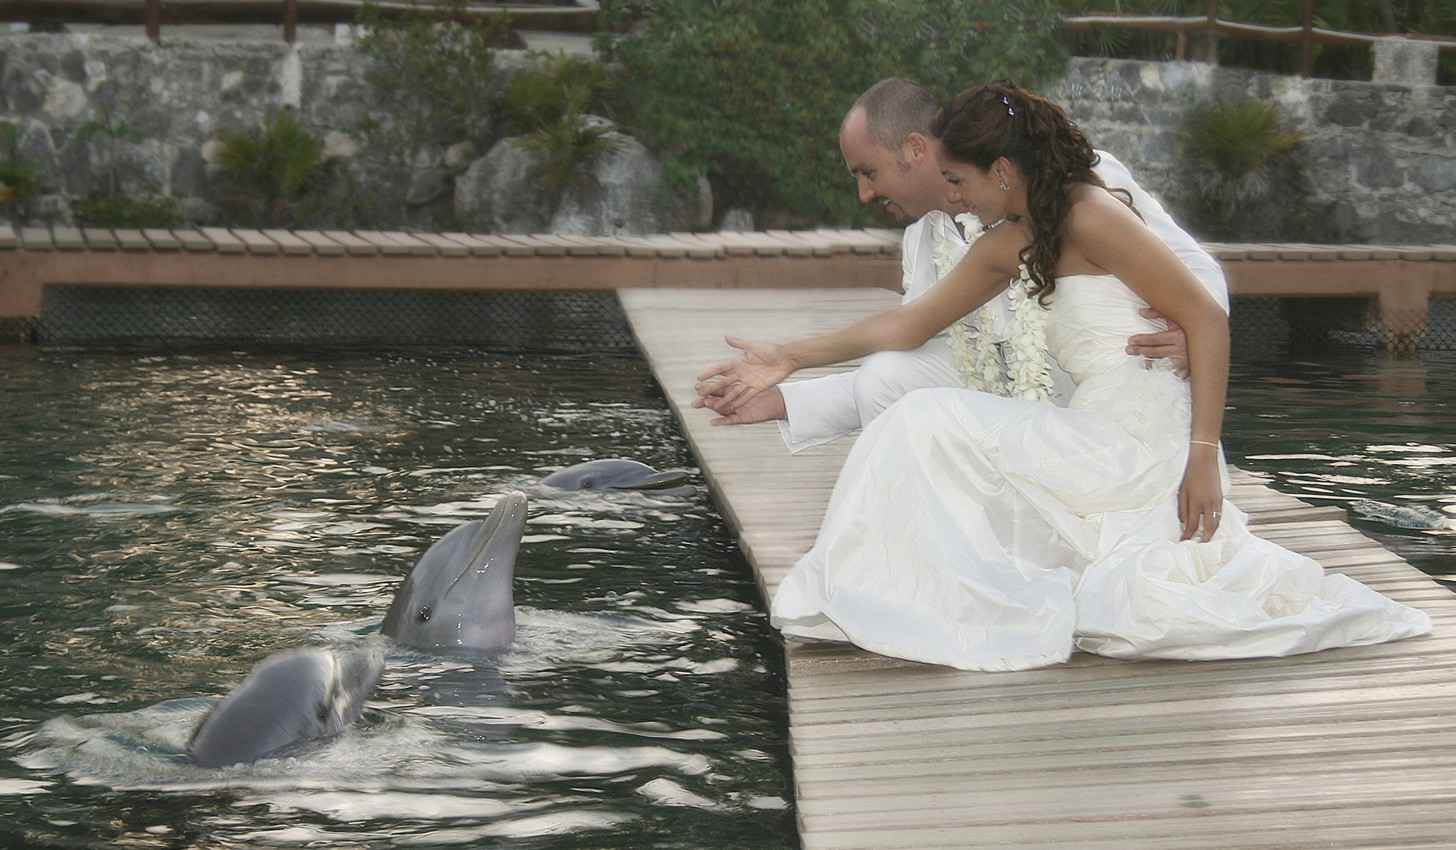 A recently married bride and groom playing with dolphins in the Riviera Maya.